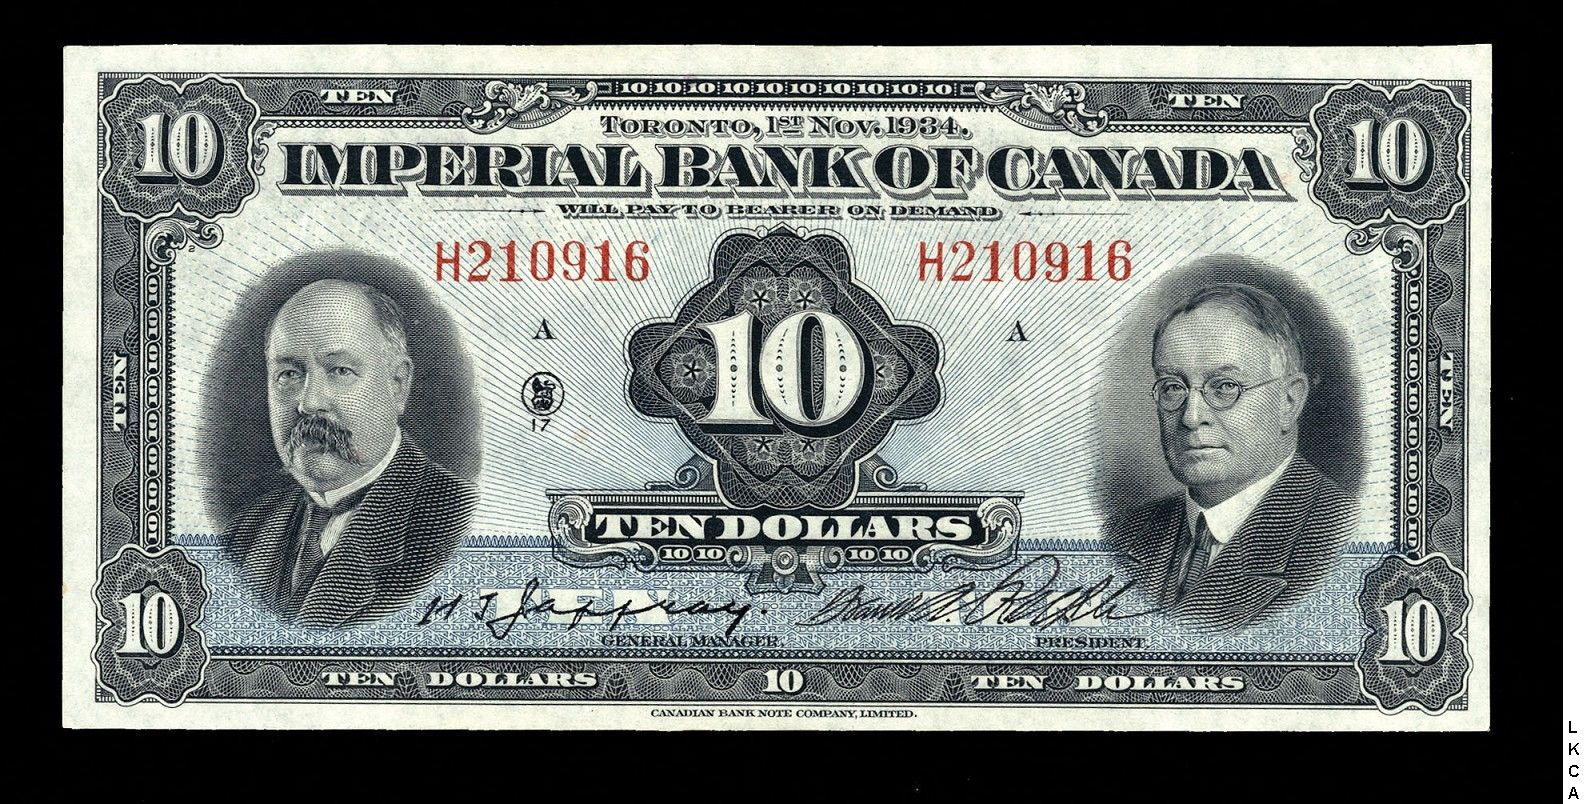 Imperial Bank Of Canada 10 00 1 11 1934 Pmg Gem Unc 65 Bank Notes Old Money